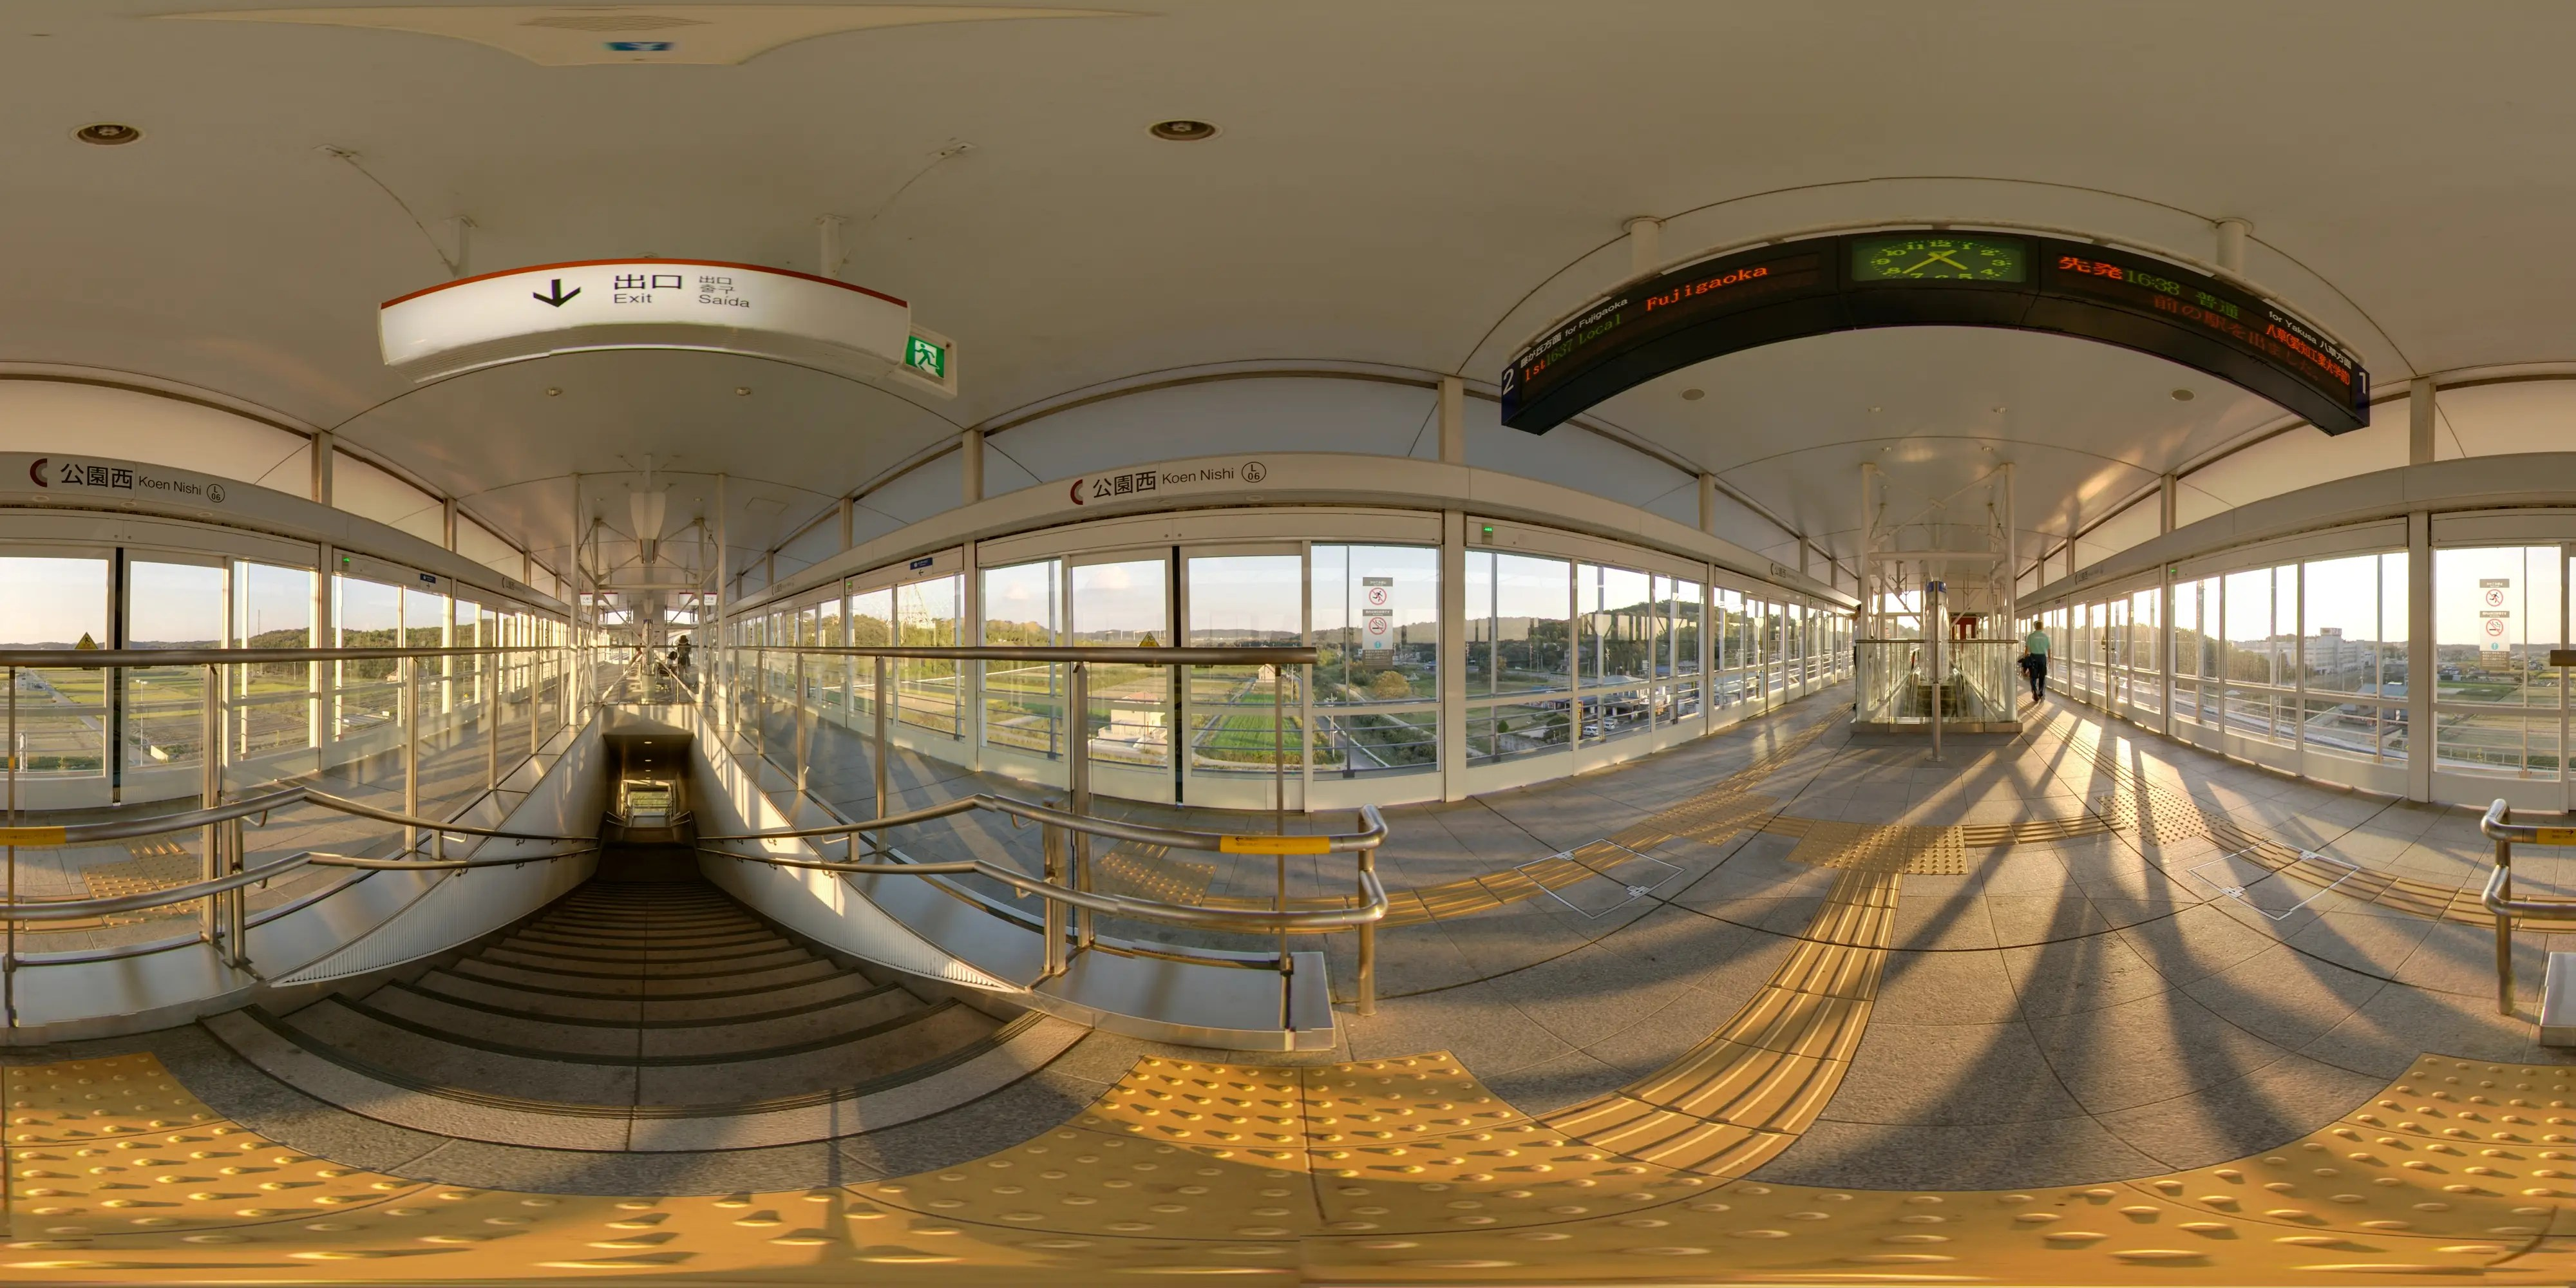 This is the Expo Park West mag-lev train station in Aichi, through the fish-eye lens of Mazukasa Matsomoto.